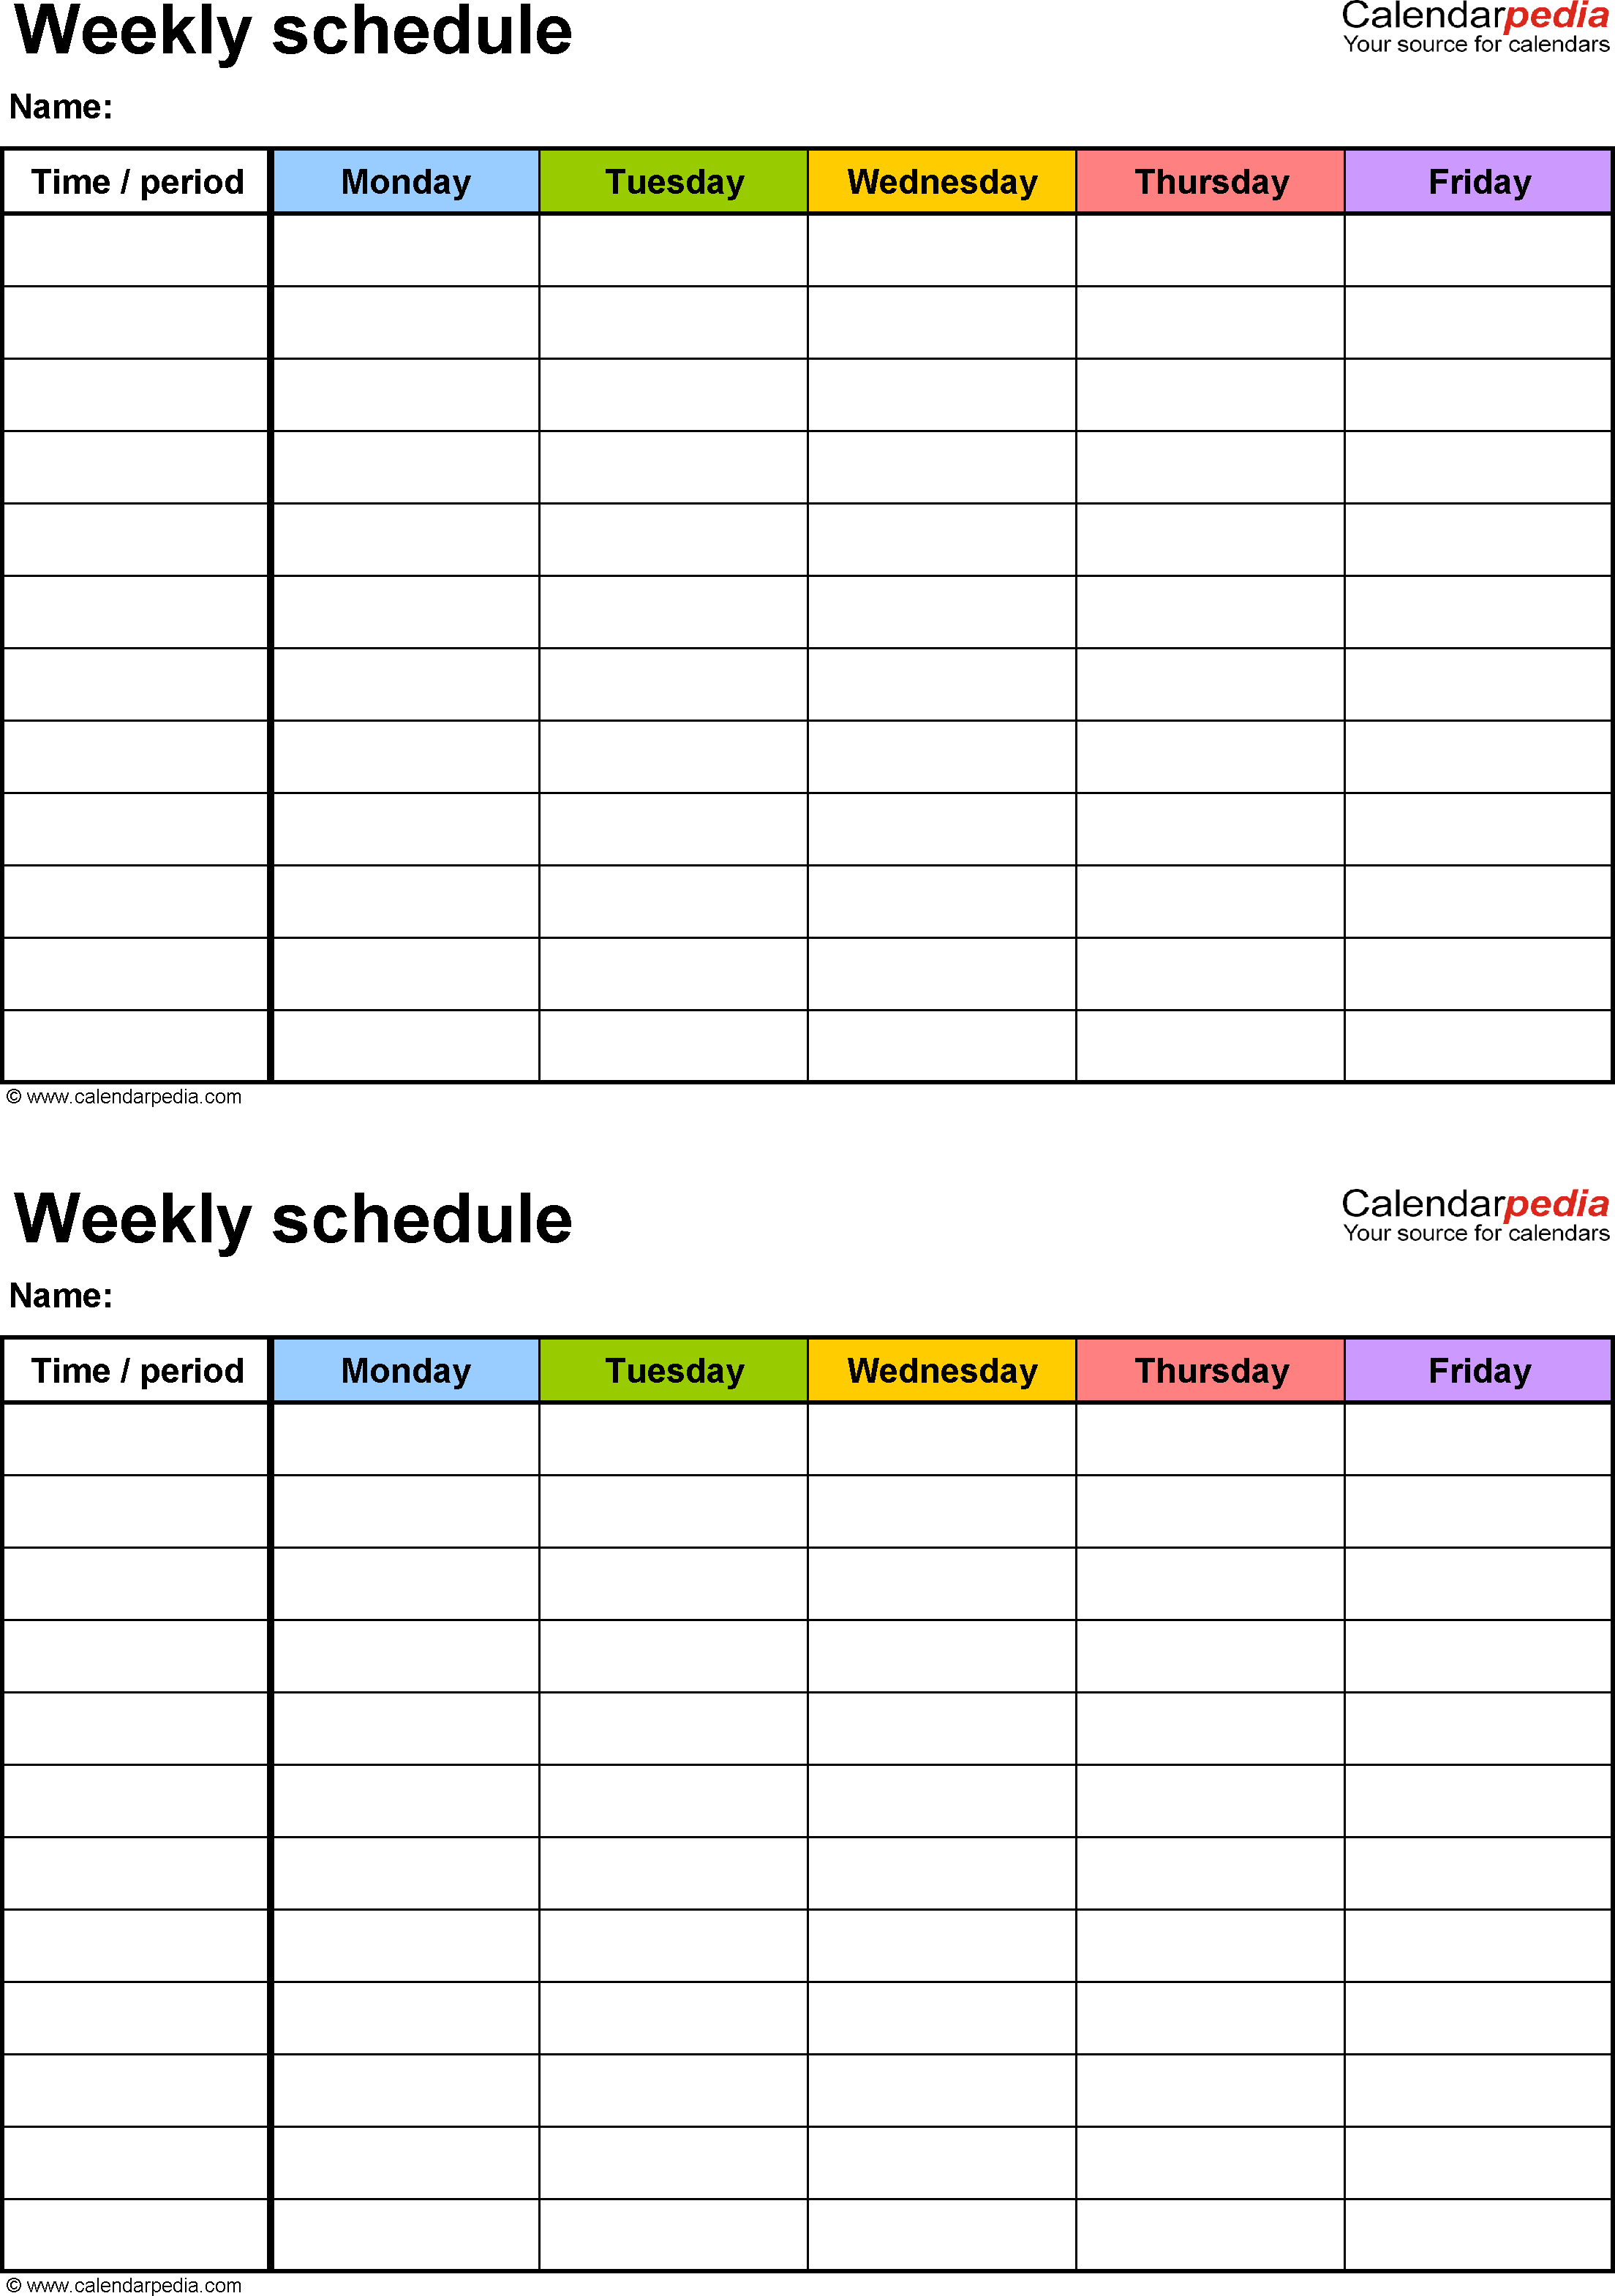 Free Weekly Schedule Templates For Pdf - 18 Templates for Weekly Schedule Template Free To Print